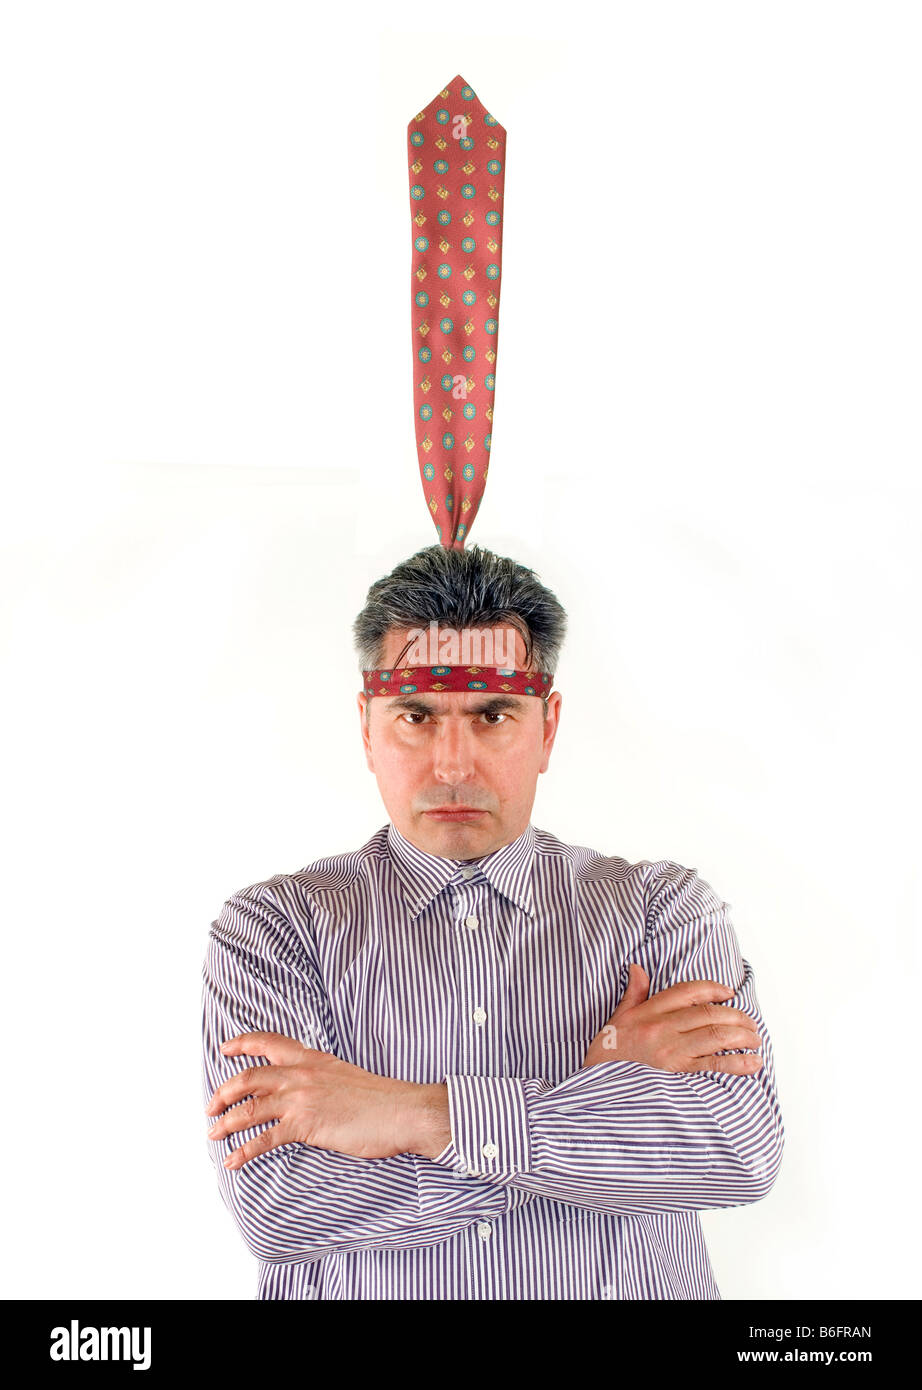 Businessman wearing his tie as a headdress - Stock Image